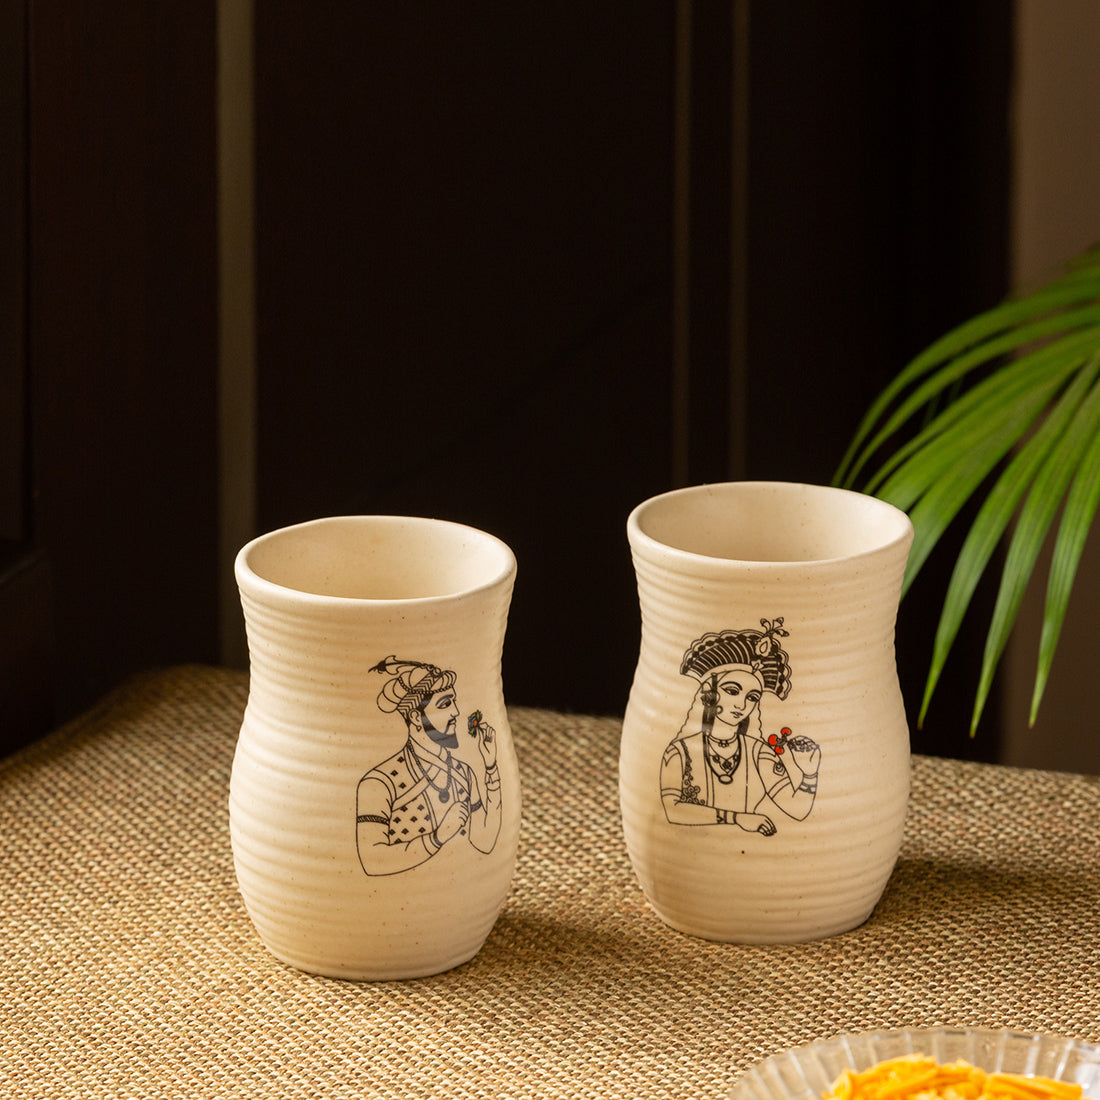 Daawat-e-Taj' Handcrafted Ceramic Water & Milk Glasses (Set of 2, 320 ml, Microwave Safe)